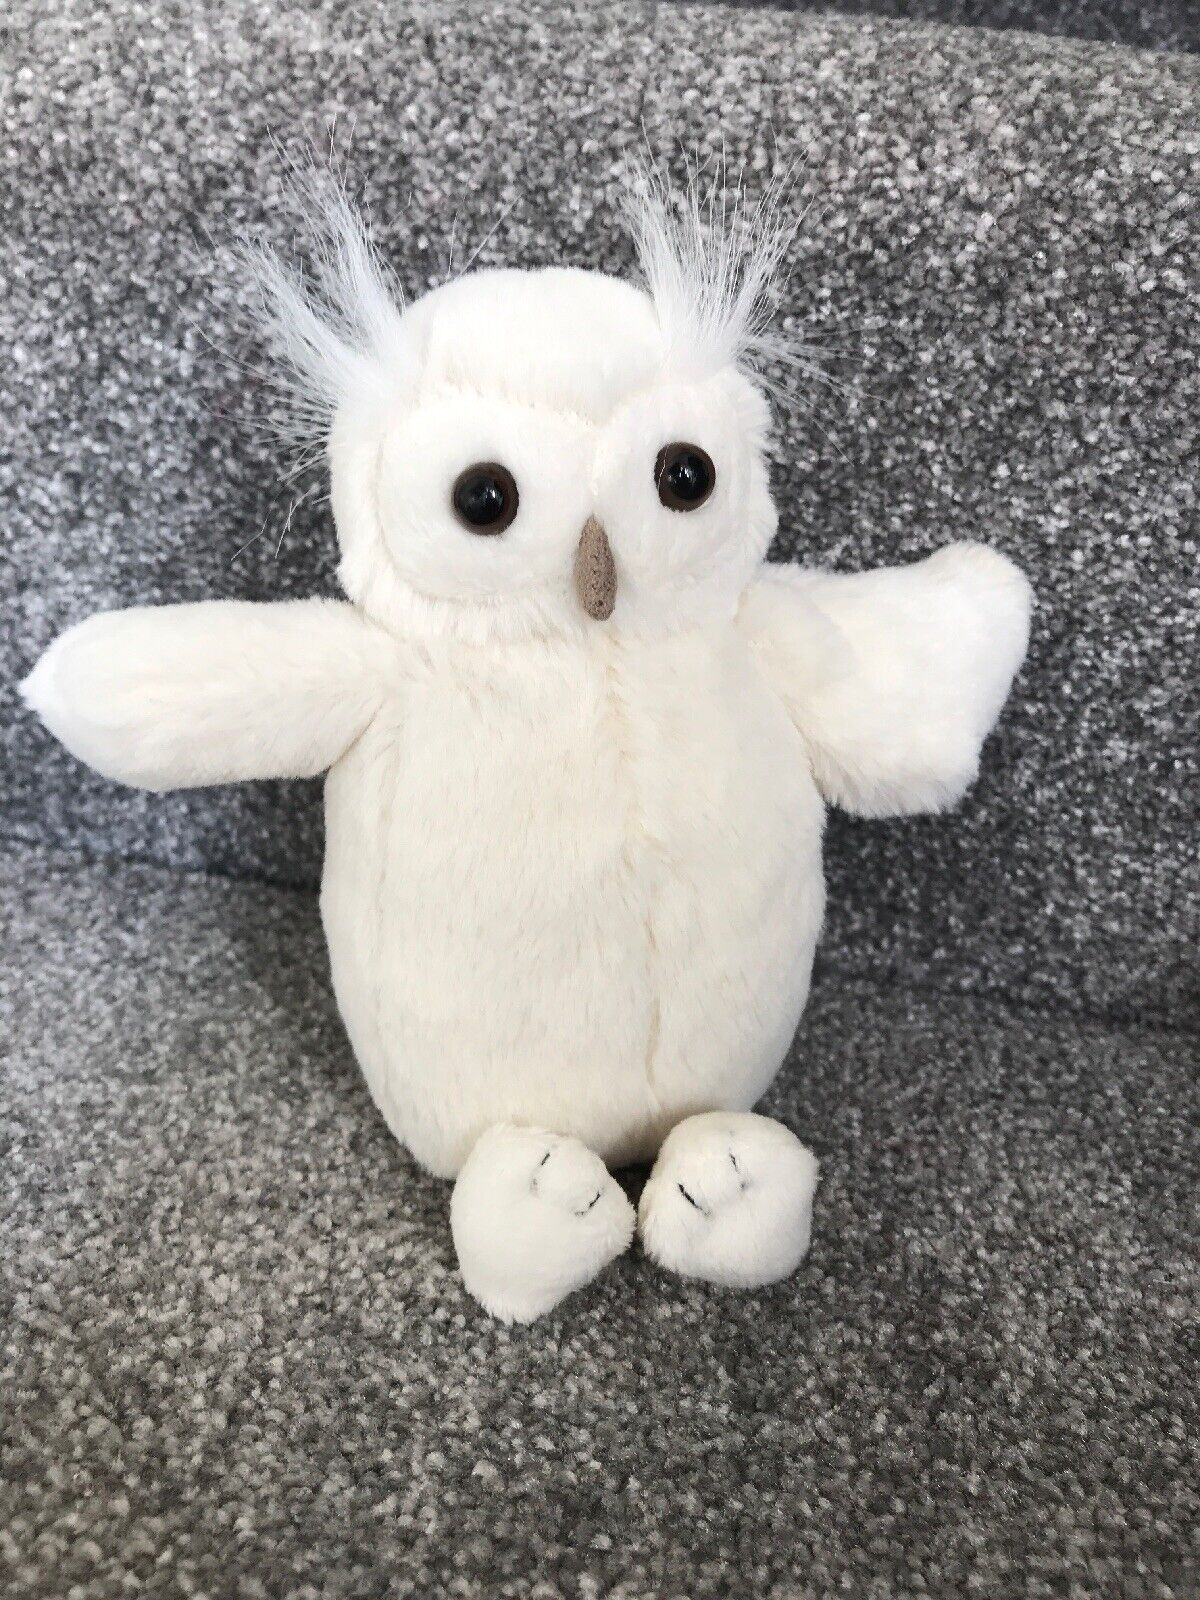 Jellycat Bashful Cream Owl Soft Plush Toy Vgc Retired 7  Small (18cm) Jelly1776